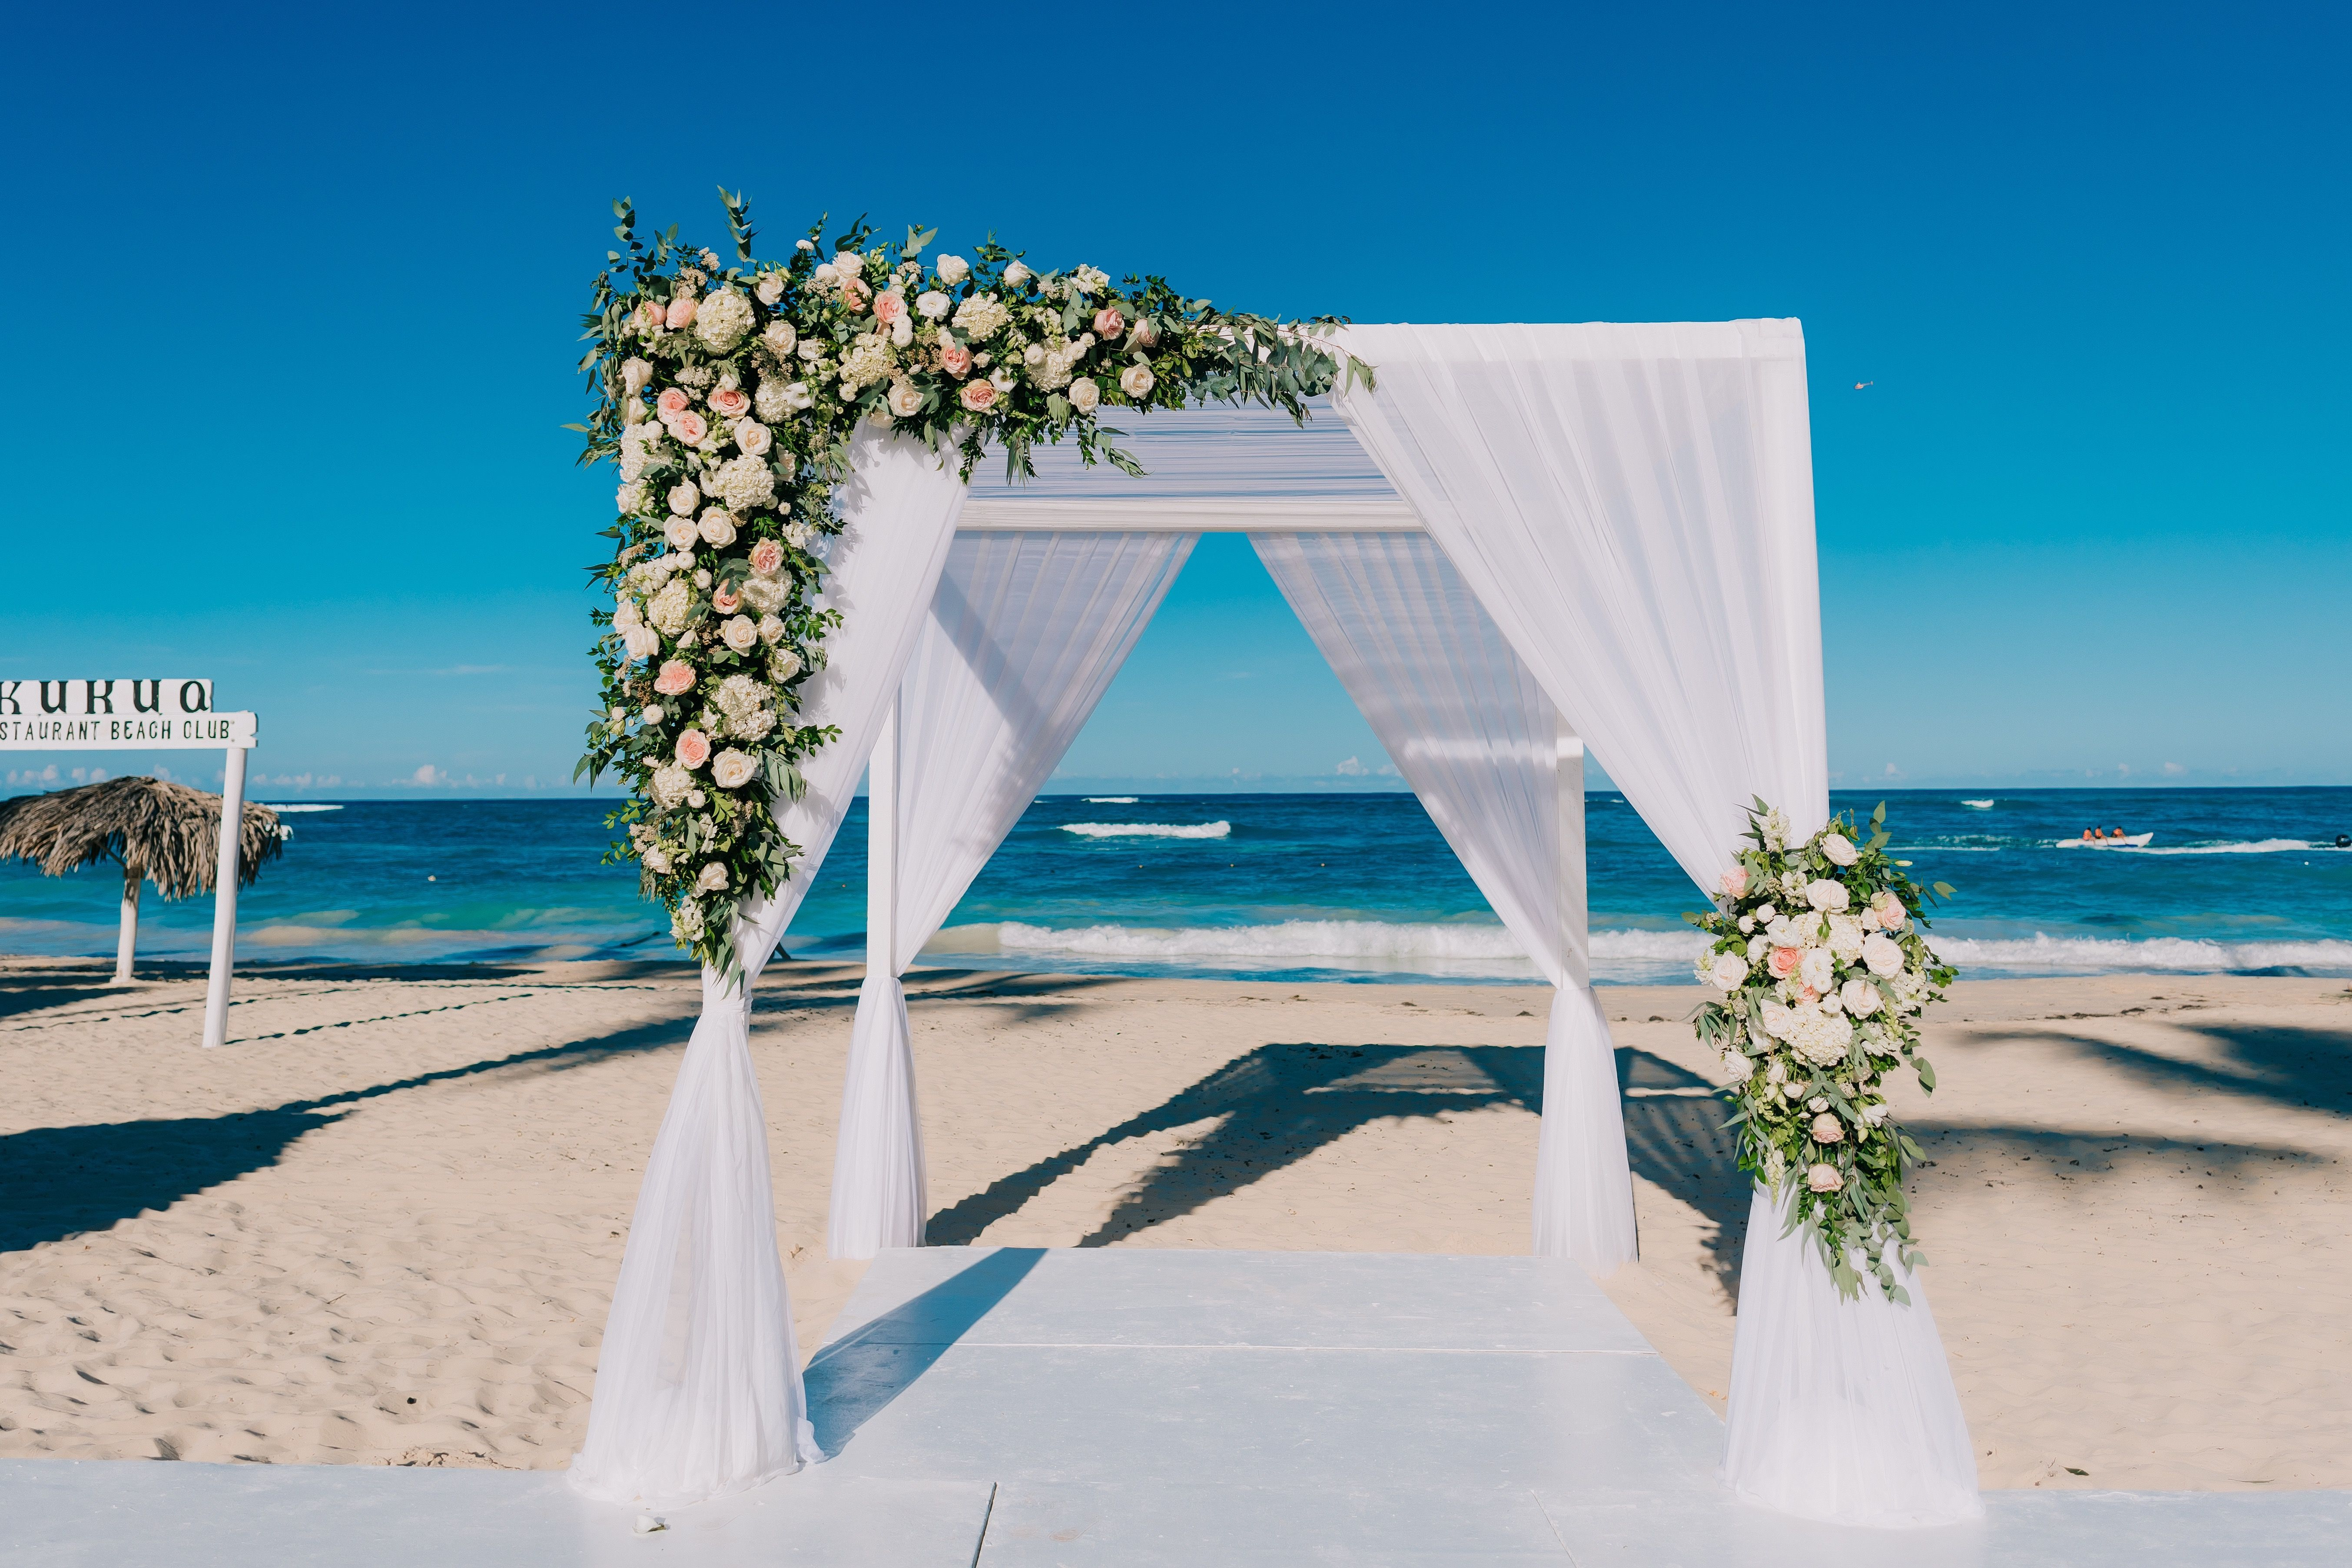 This Romantic Beach Gazebo Set Against The Blue See And Sky Is